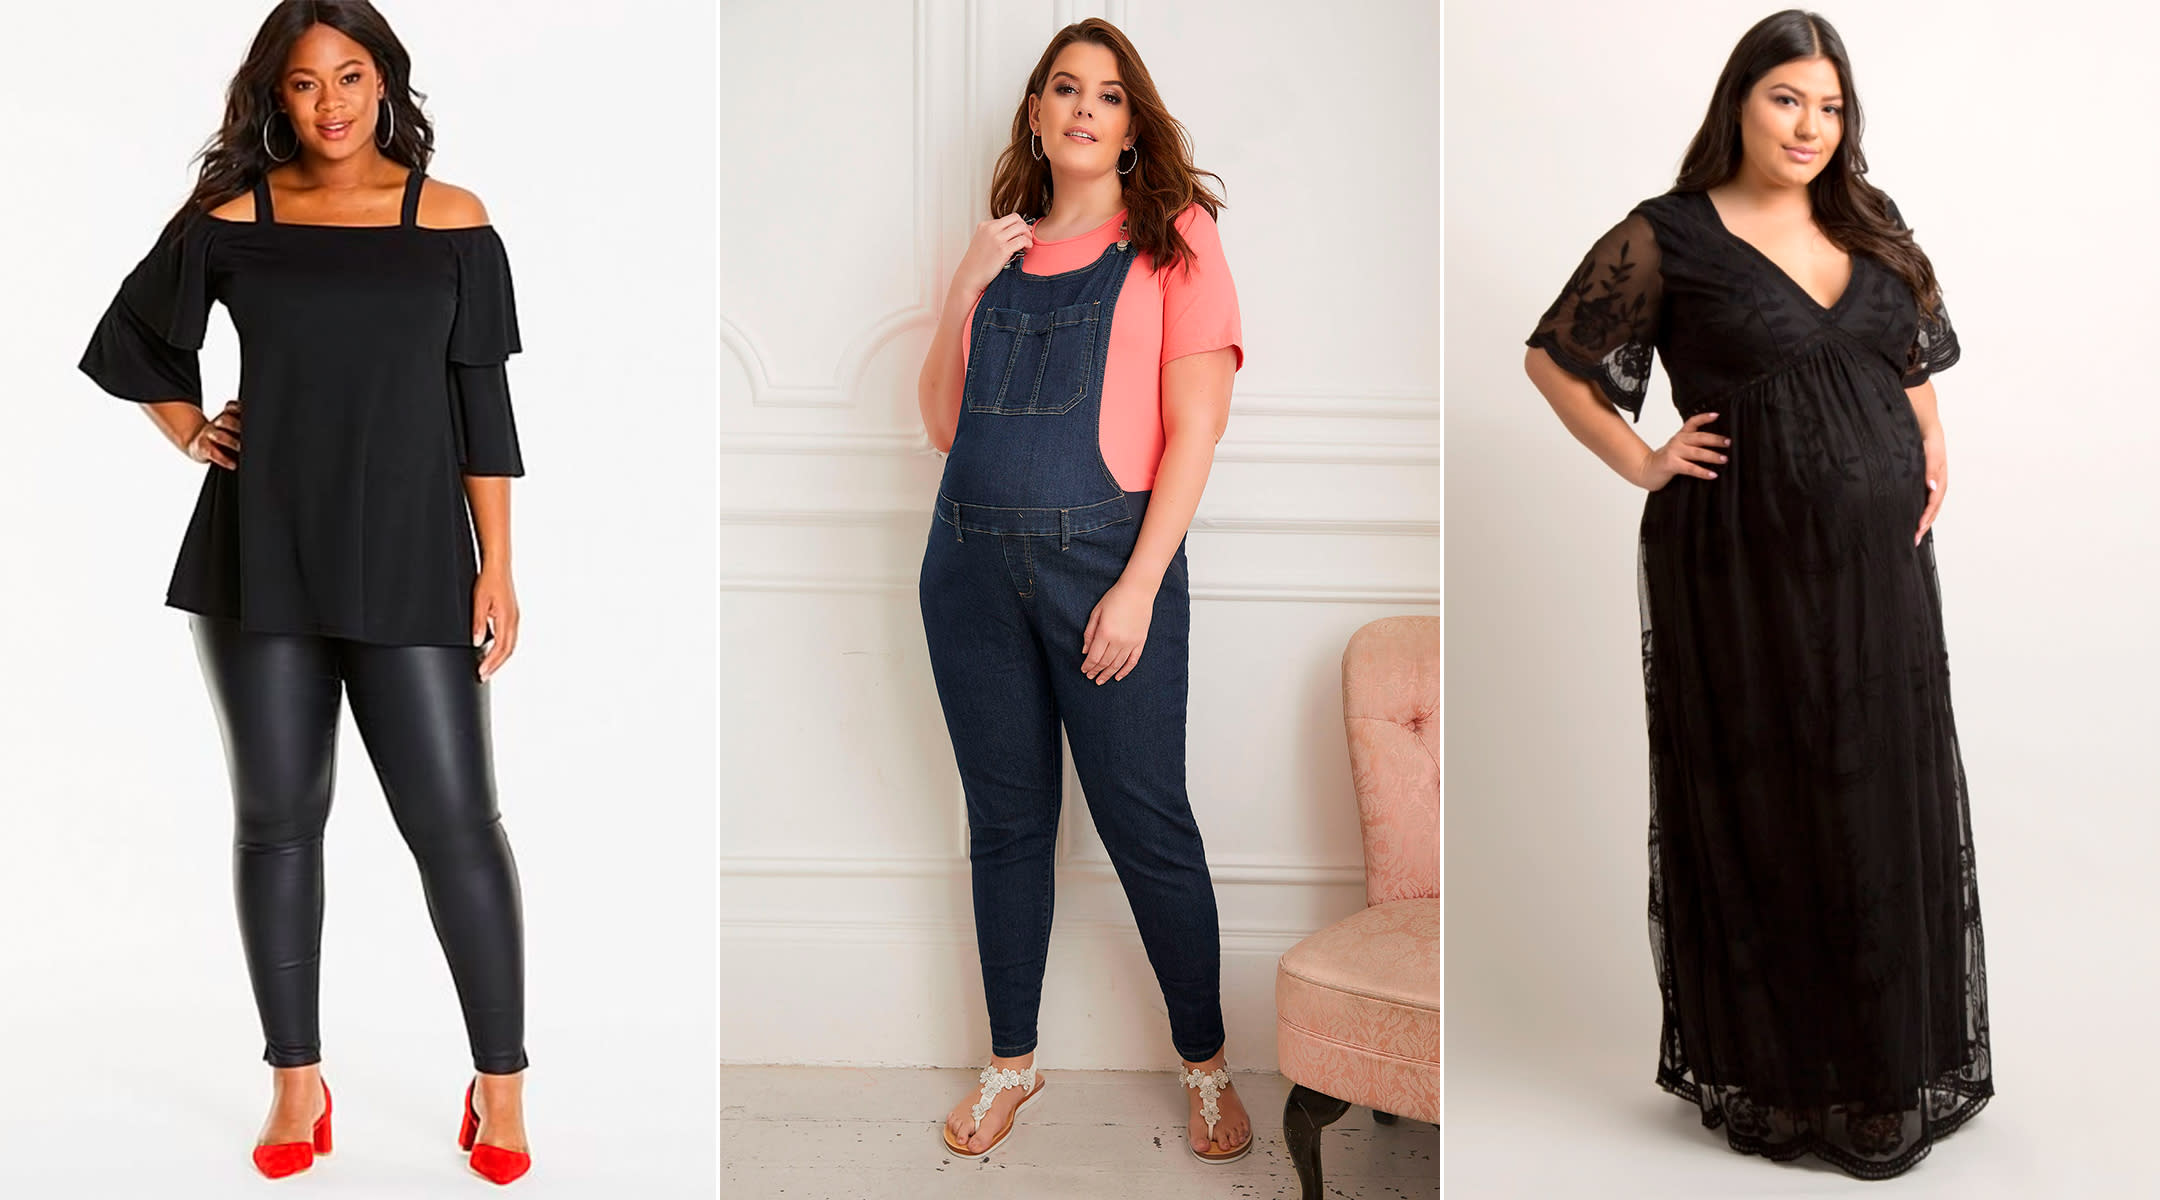 Best Places to Shop for Plus-Size Maternity Clothes